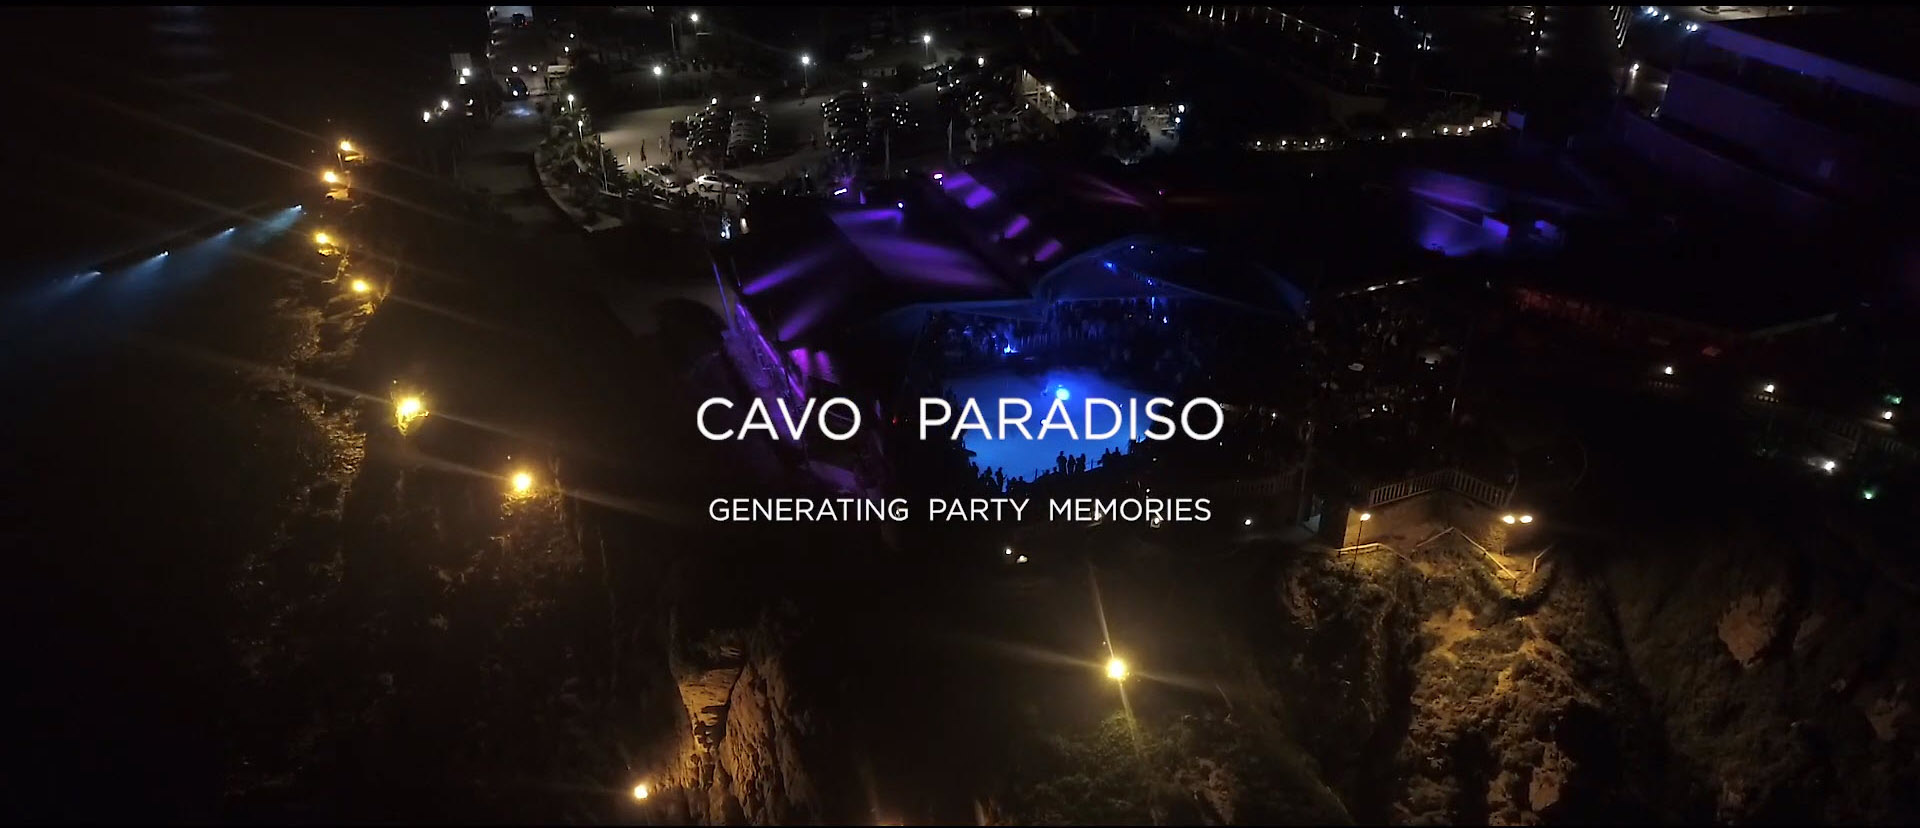 Cavo Paradiso Club in Mykonos Aerial View